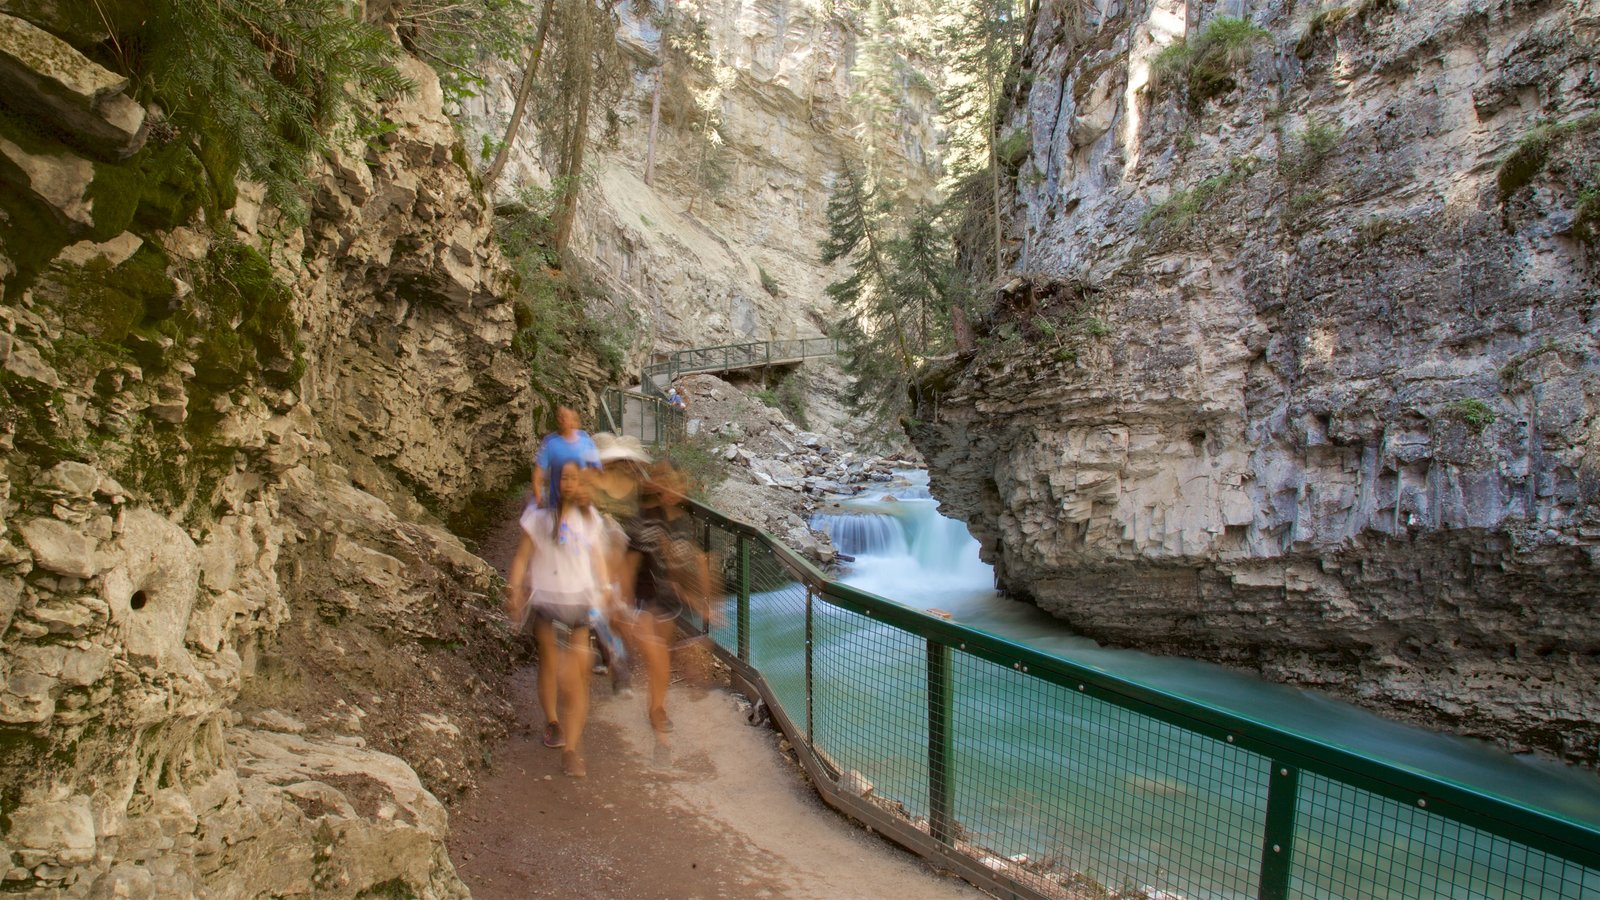 Johnston Canyon which includes a river or creek, a gorge or canyon and hiking or walking